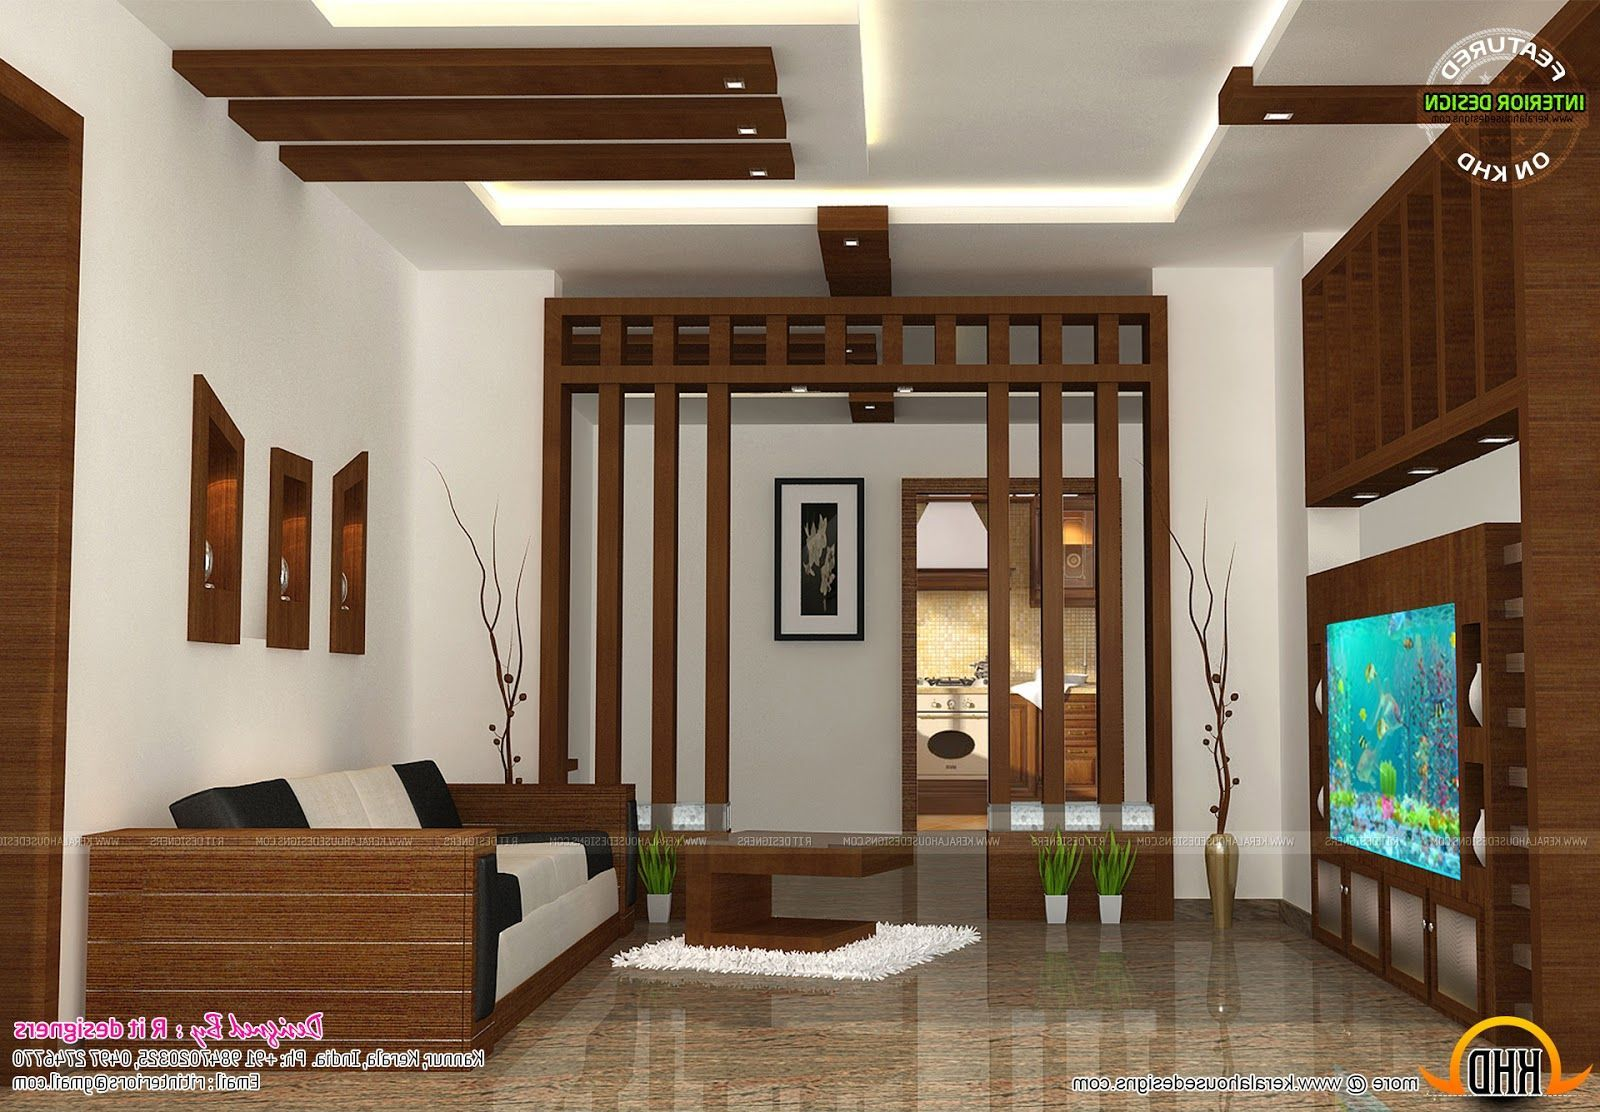 interior design living room kerala  Living room kerala, Interior